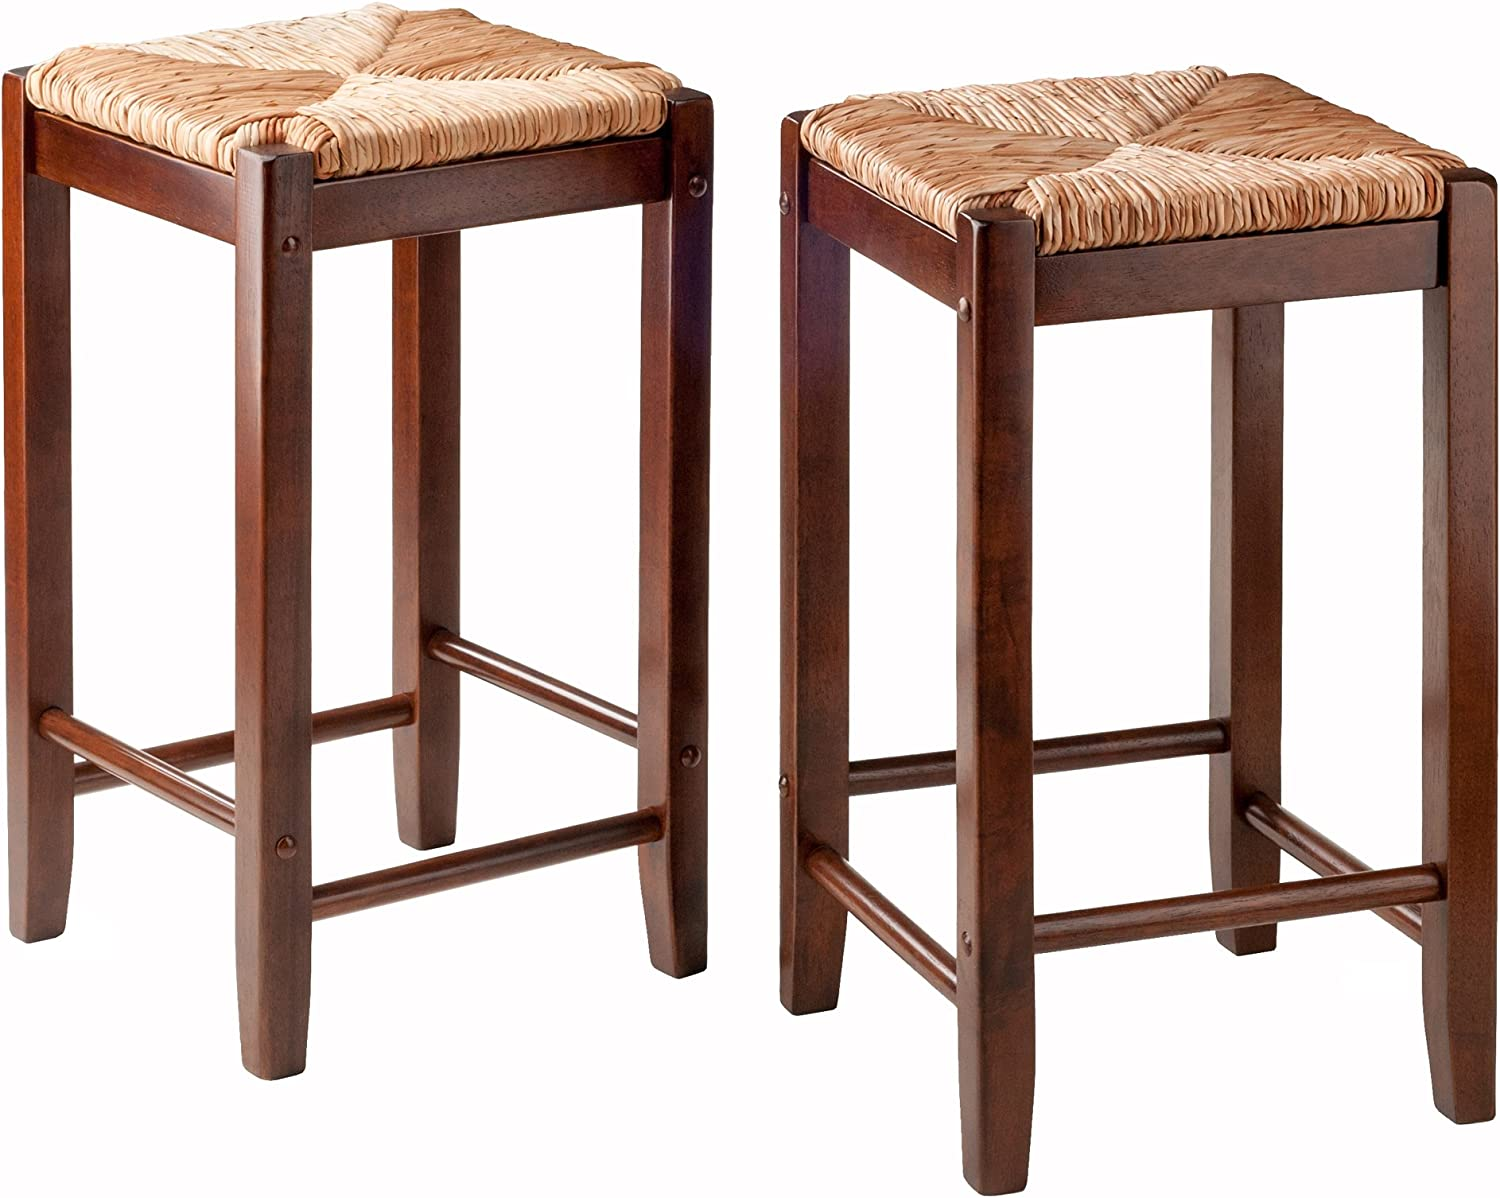 Winsome Wood Kaden 2-PC Set Counter Stools Rush Seat